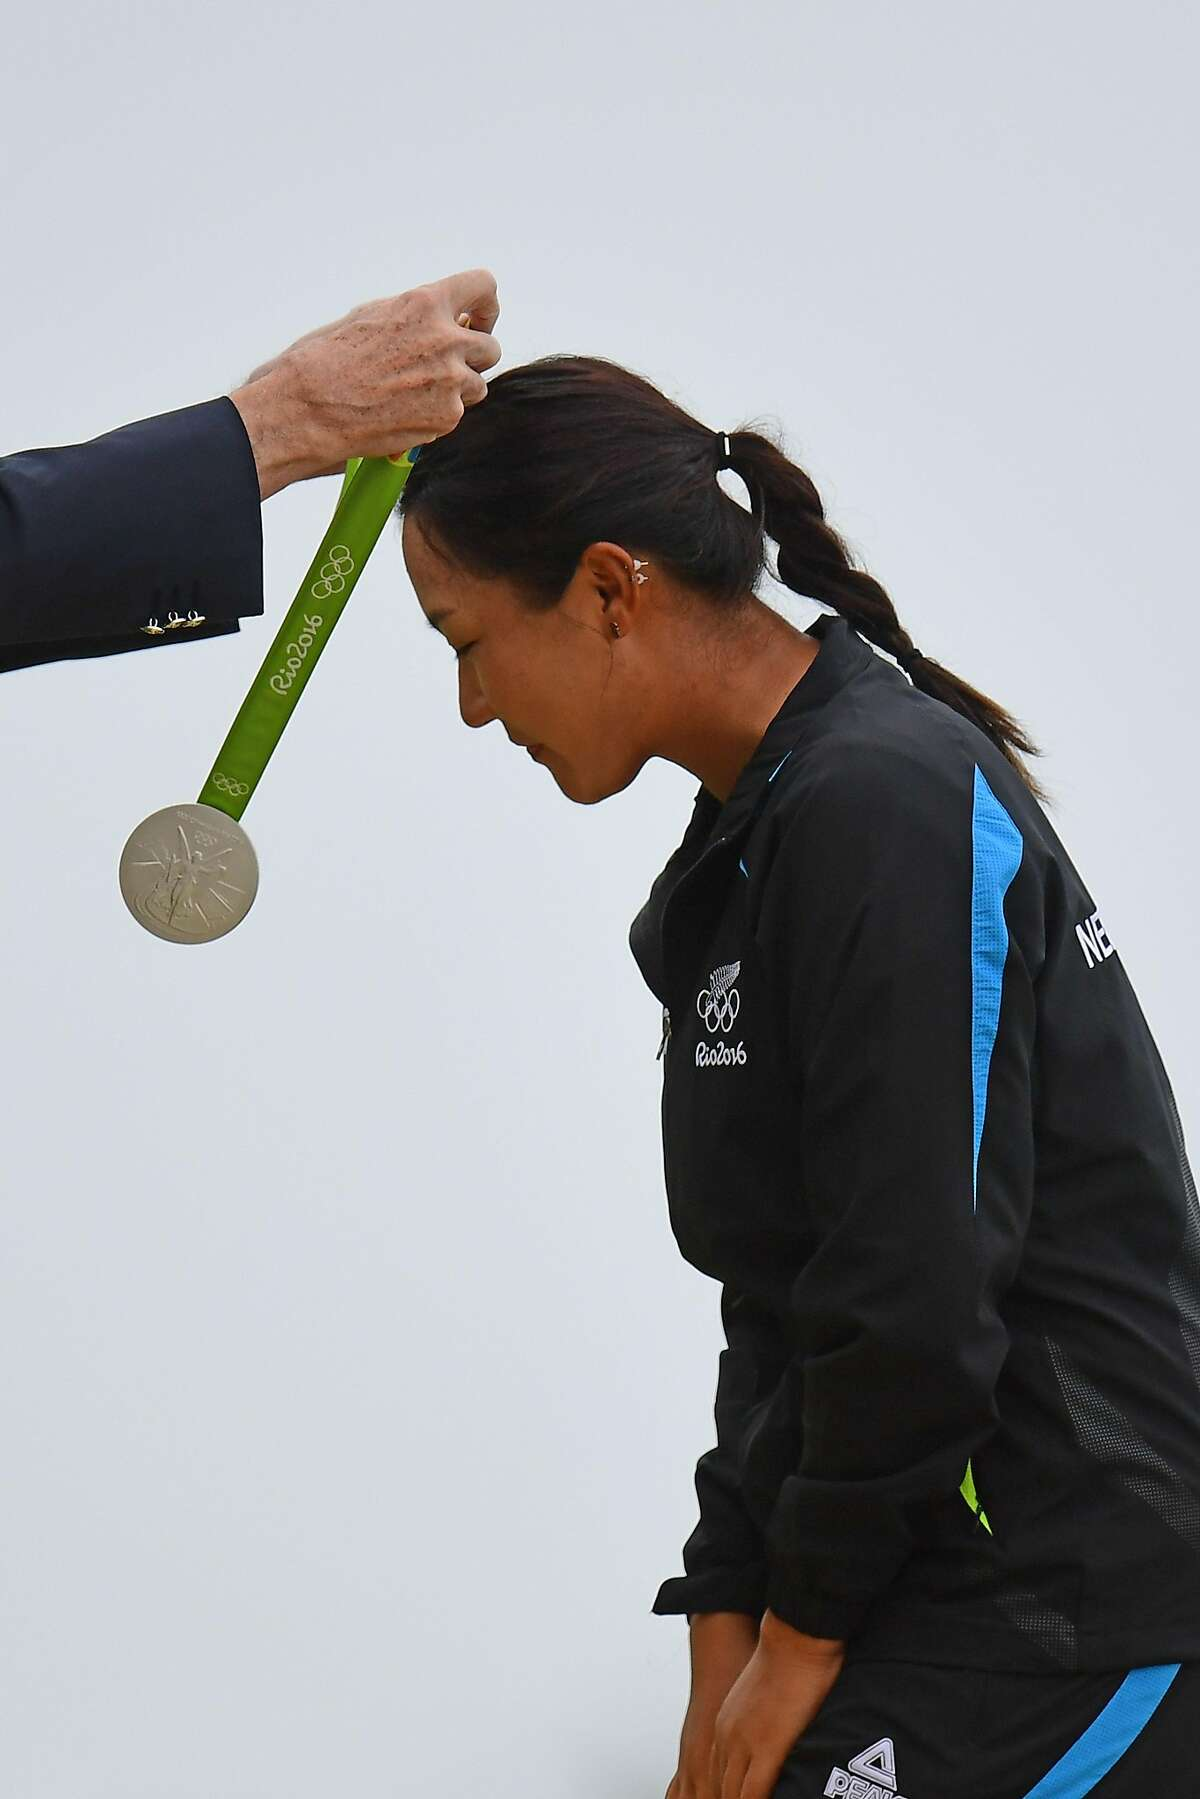 New Zealand's Lydia Ko receives her silver medal in the Women's individual stroke play at the Olympic Golf course during the Rio 2016 Olympic Games in Rio de Janeiro on August 20, 2016. / AFP PHOTO / Jim WATSONJIM WATSON/AFP/Getty Images